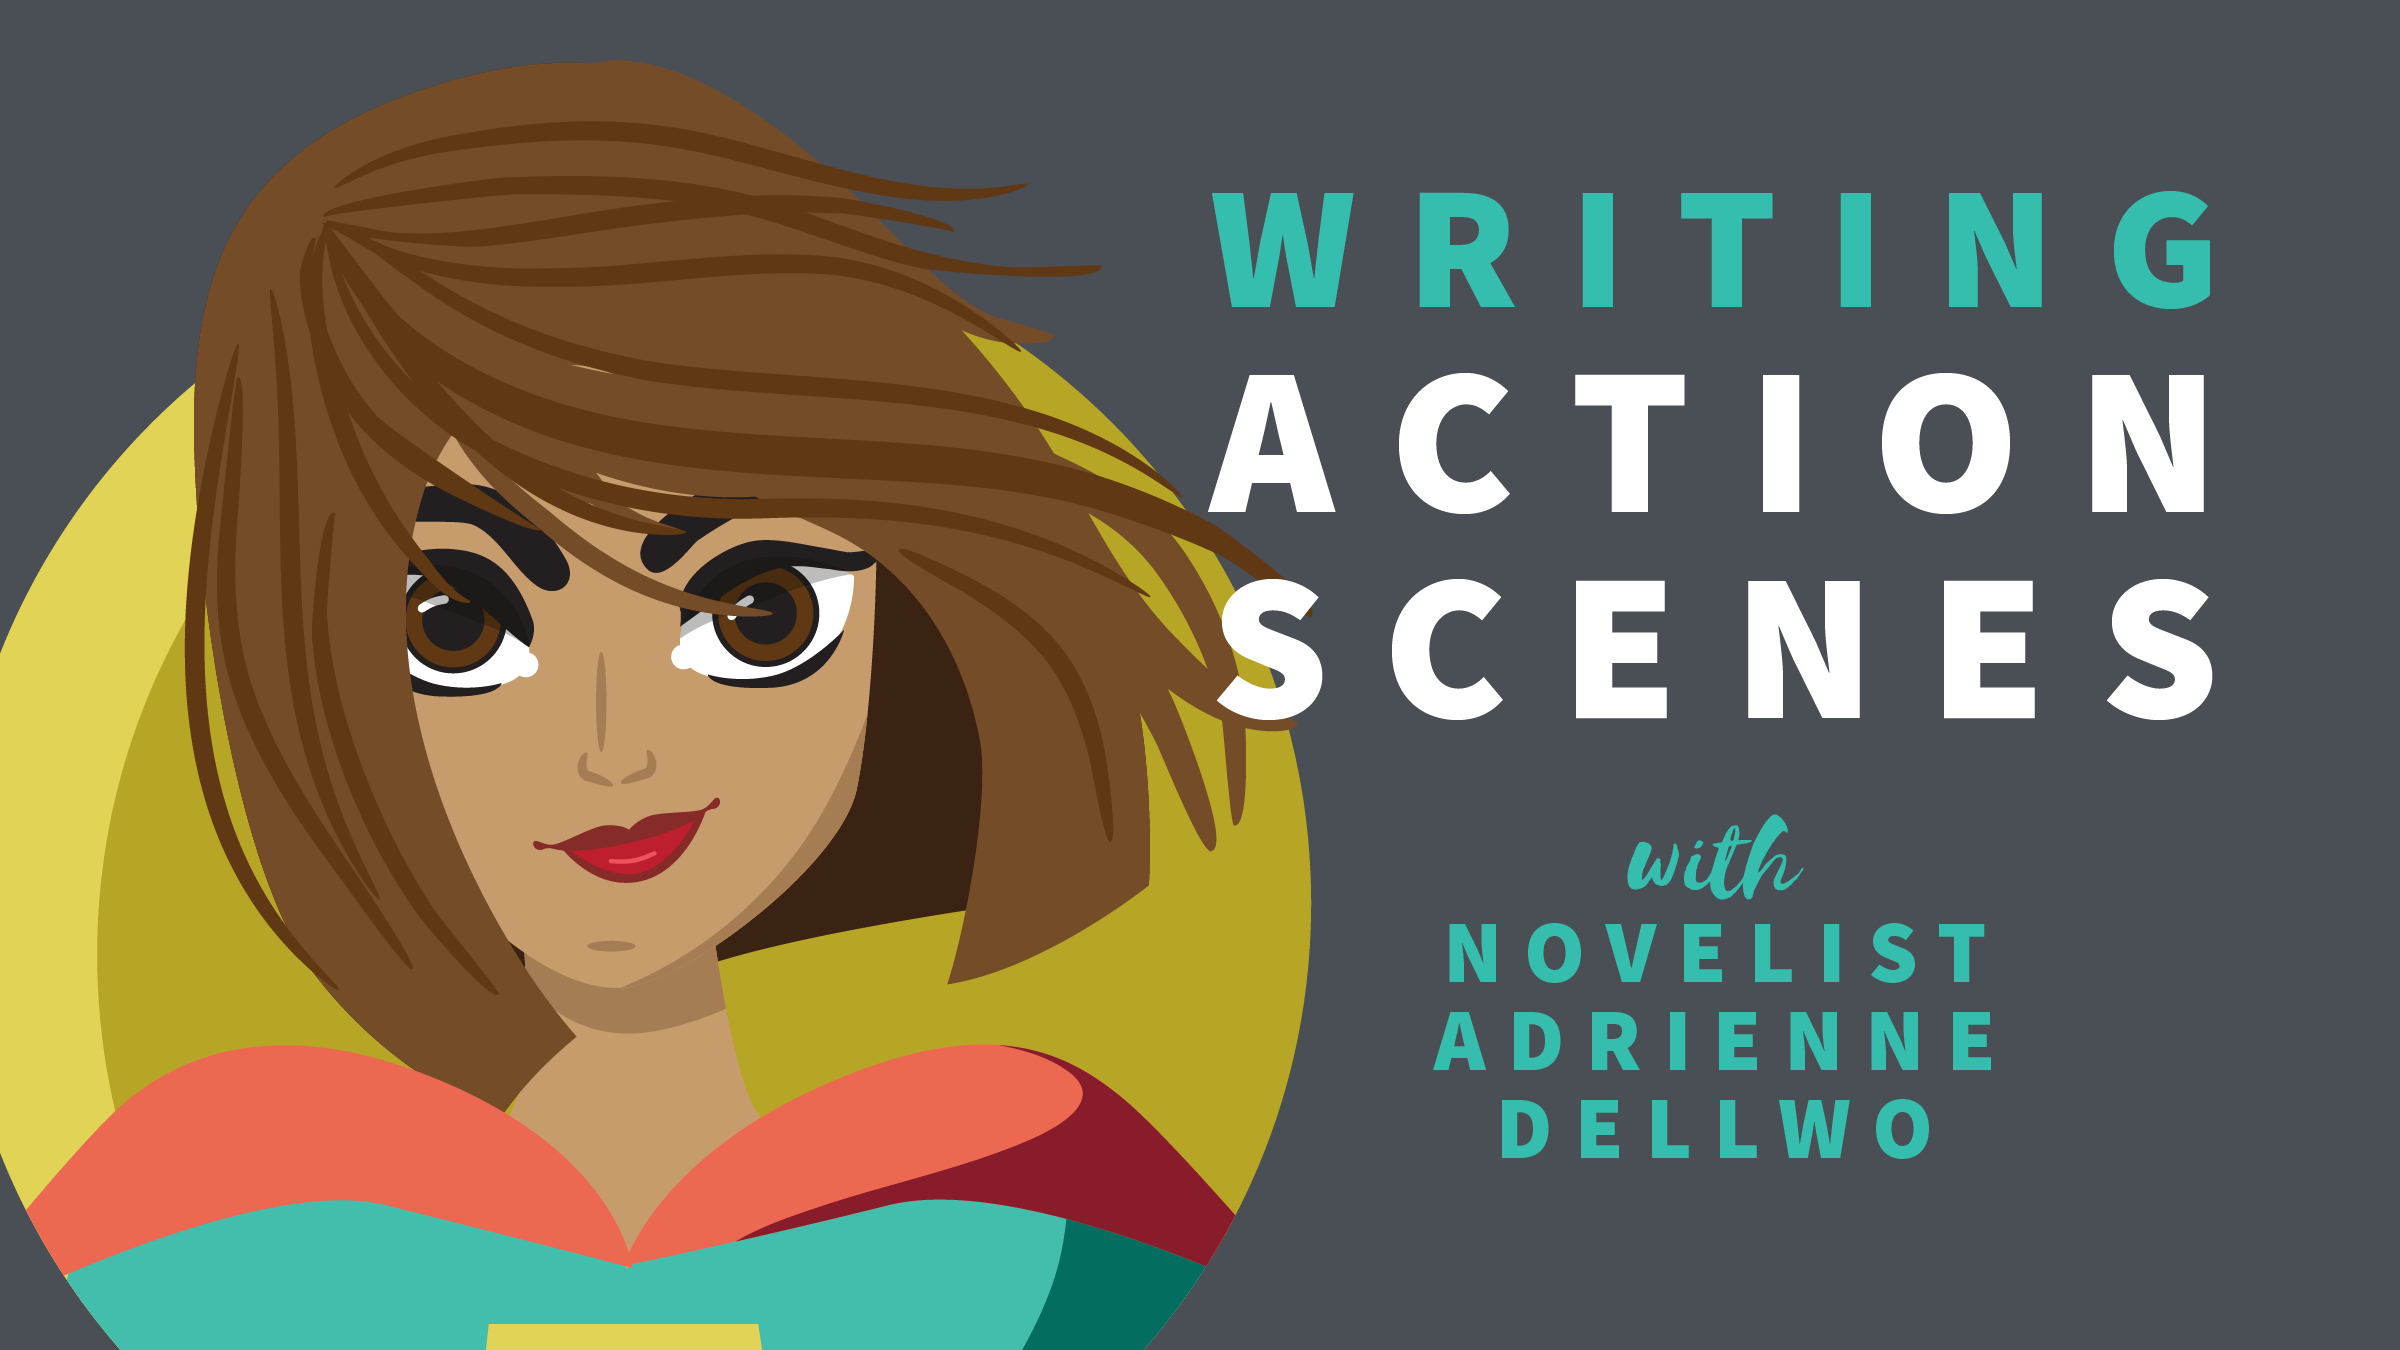 Writing Action Scenes-01.png